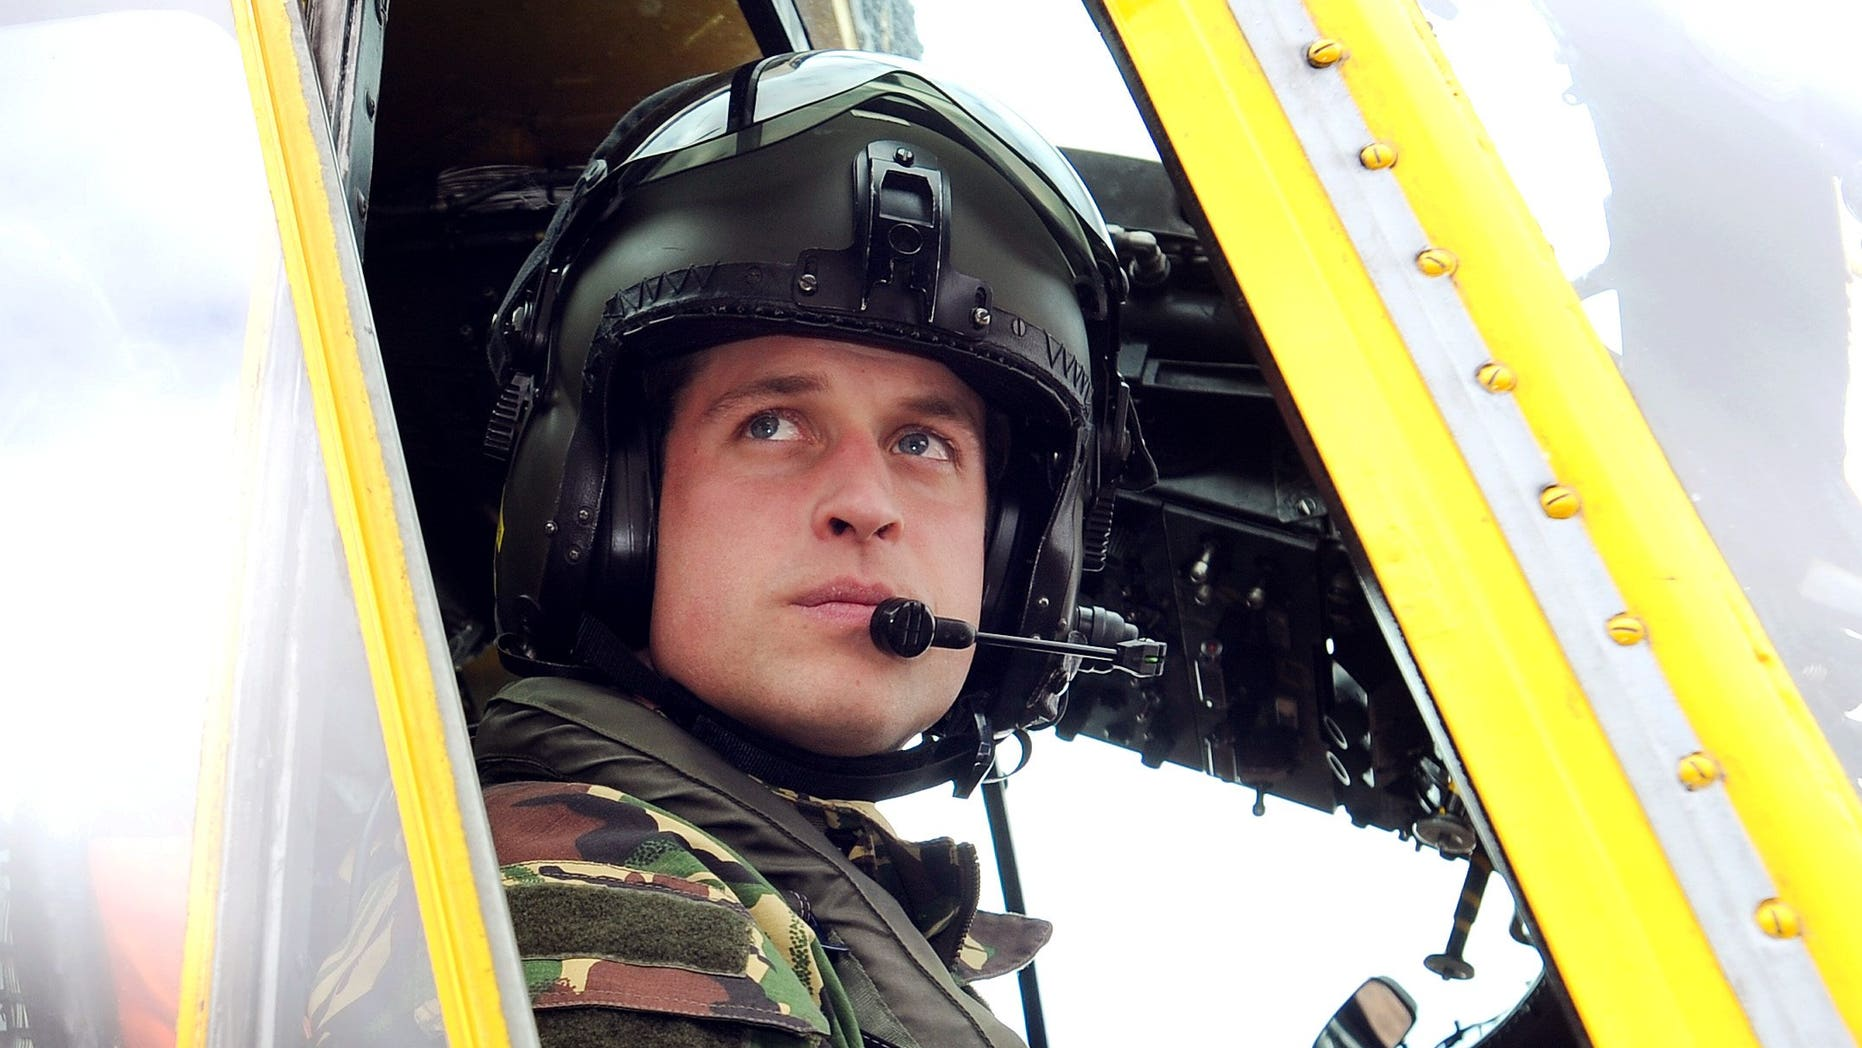 March 31, 2011. Prince William sits at the controls of a Sea King helicopter during a training exercise at Holyhead Mountain, in Wales.